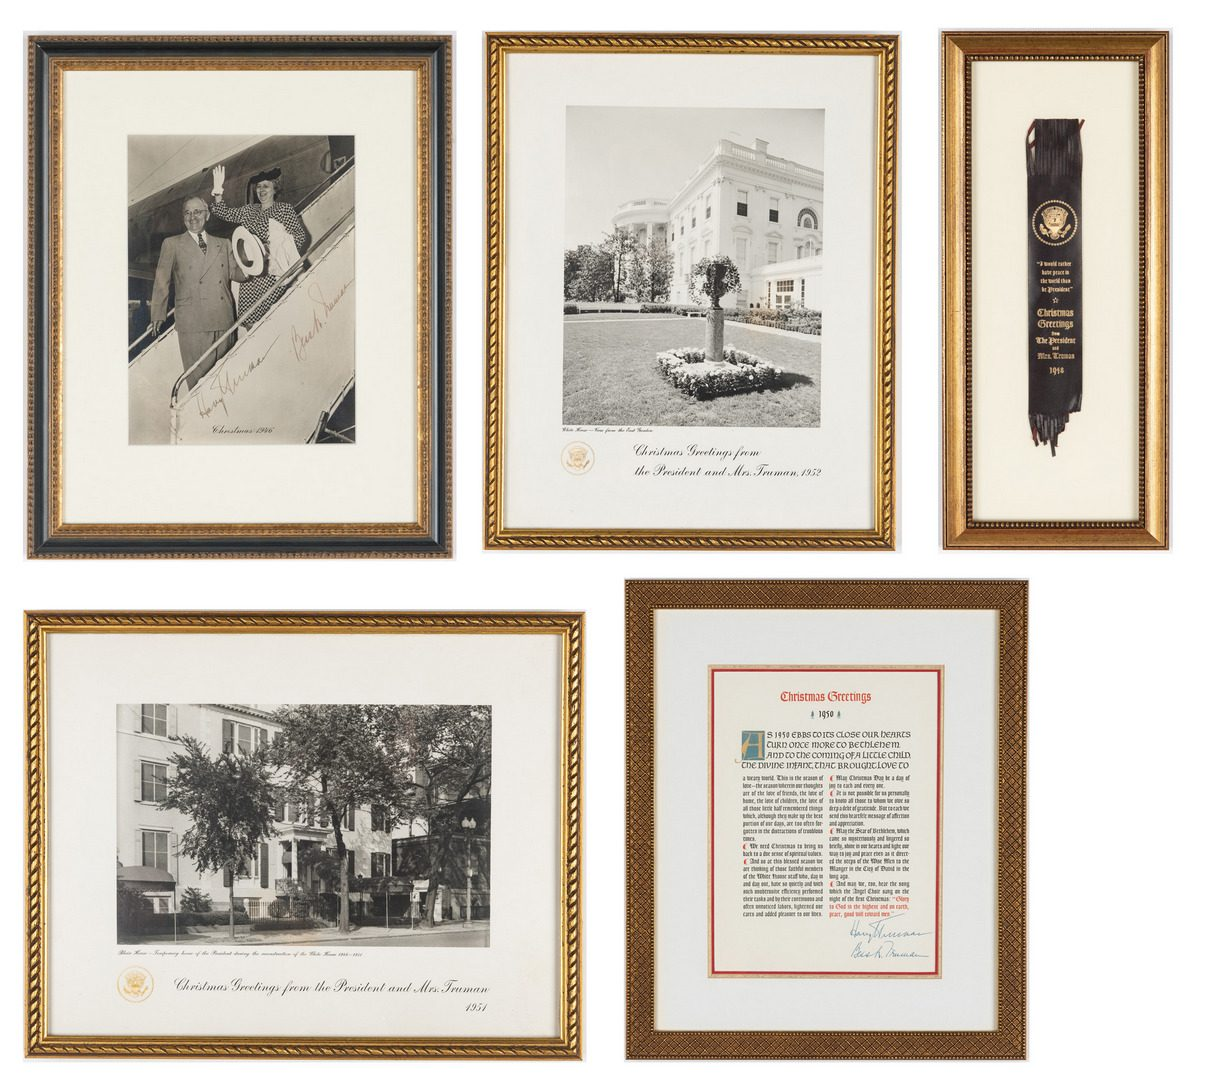 Lot 761: 5 Truman Christmas Gifts, incl. Hand Signed Photograph